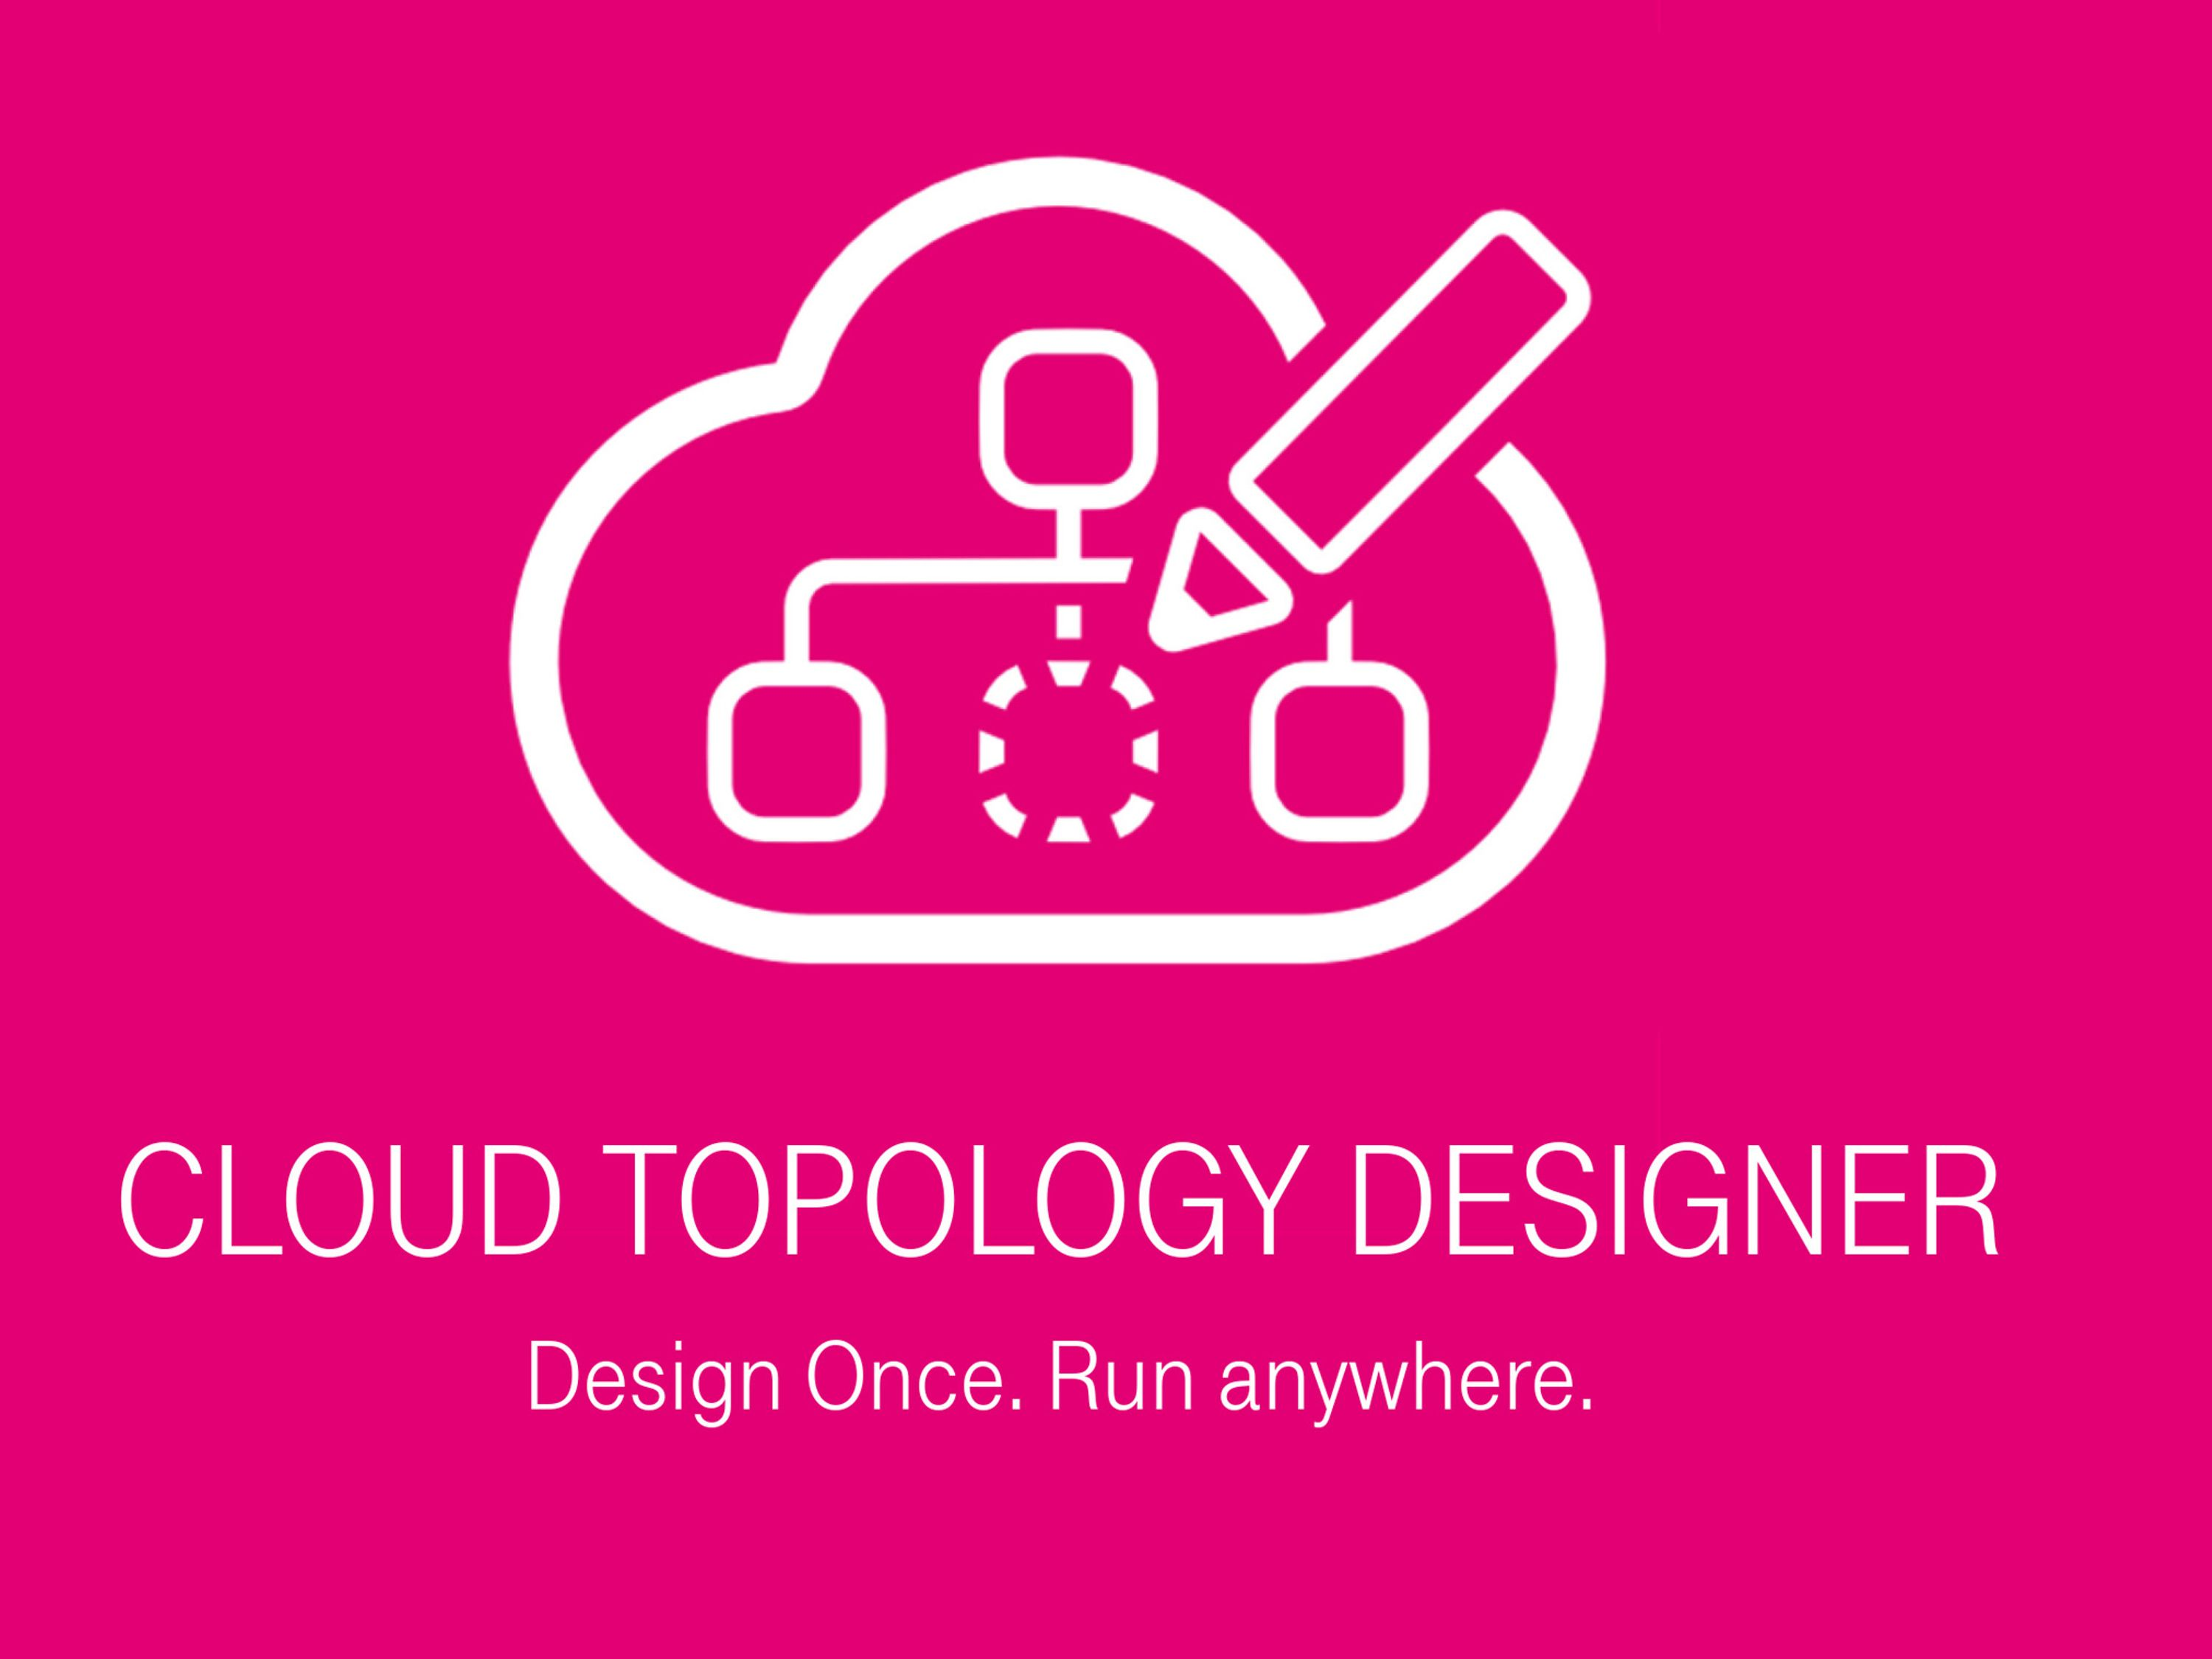 Cloud Topology Designer